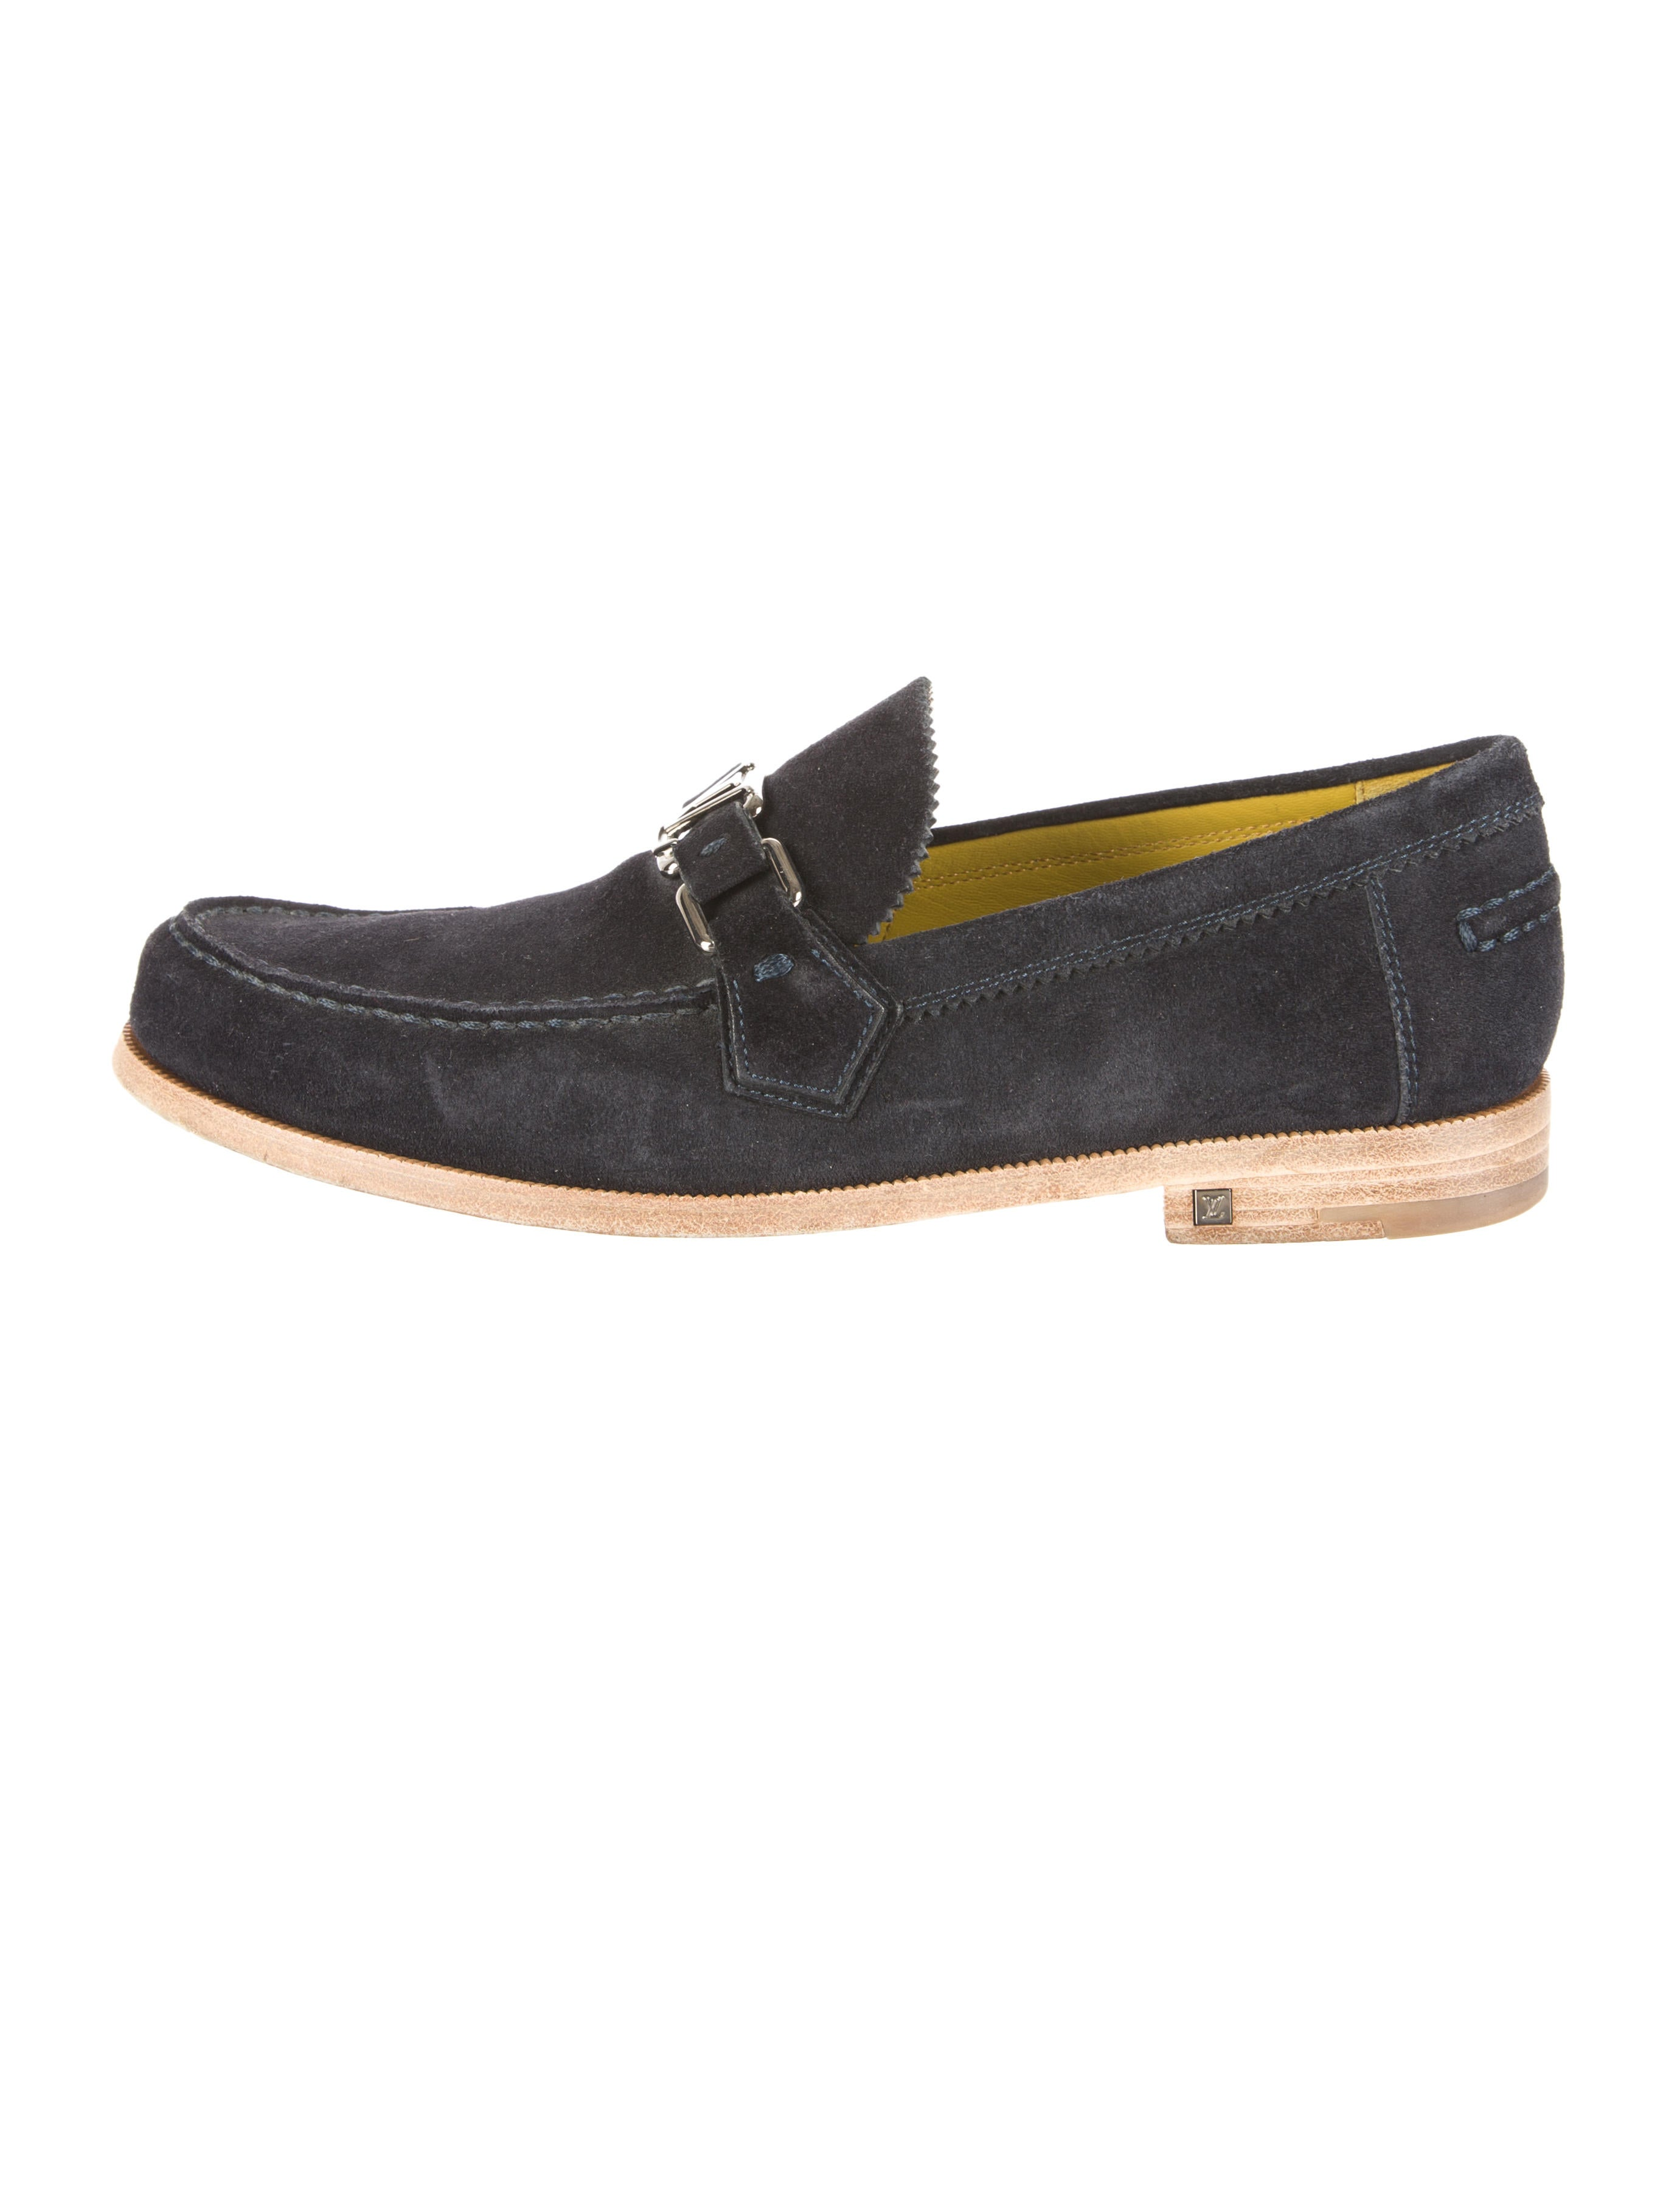 Louis Vuitton Suede Major Loafers - Shoes - LOU65628 | The RealReal